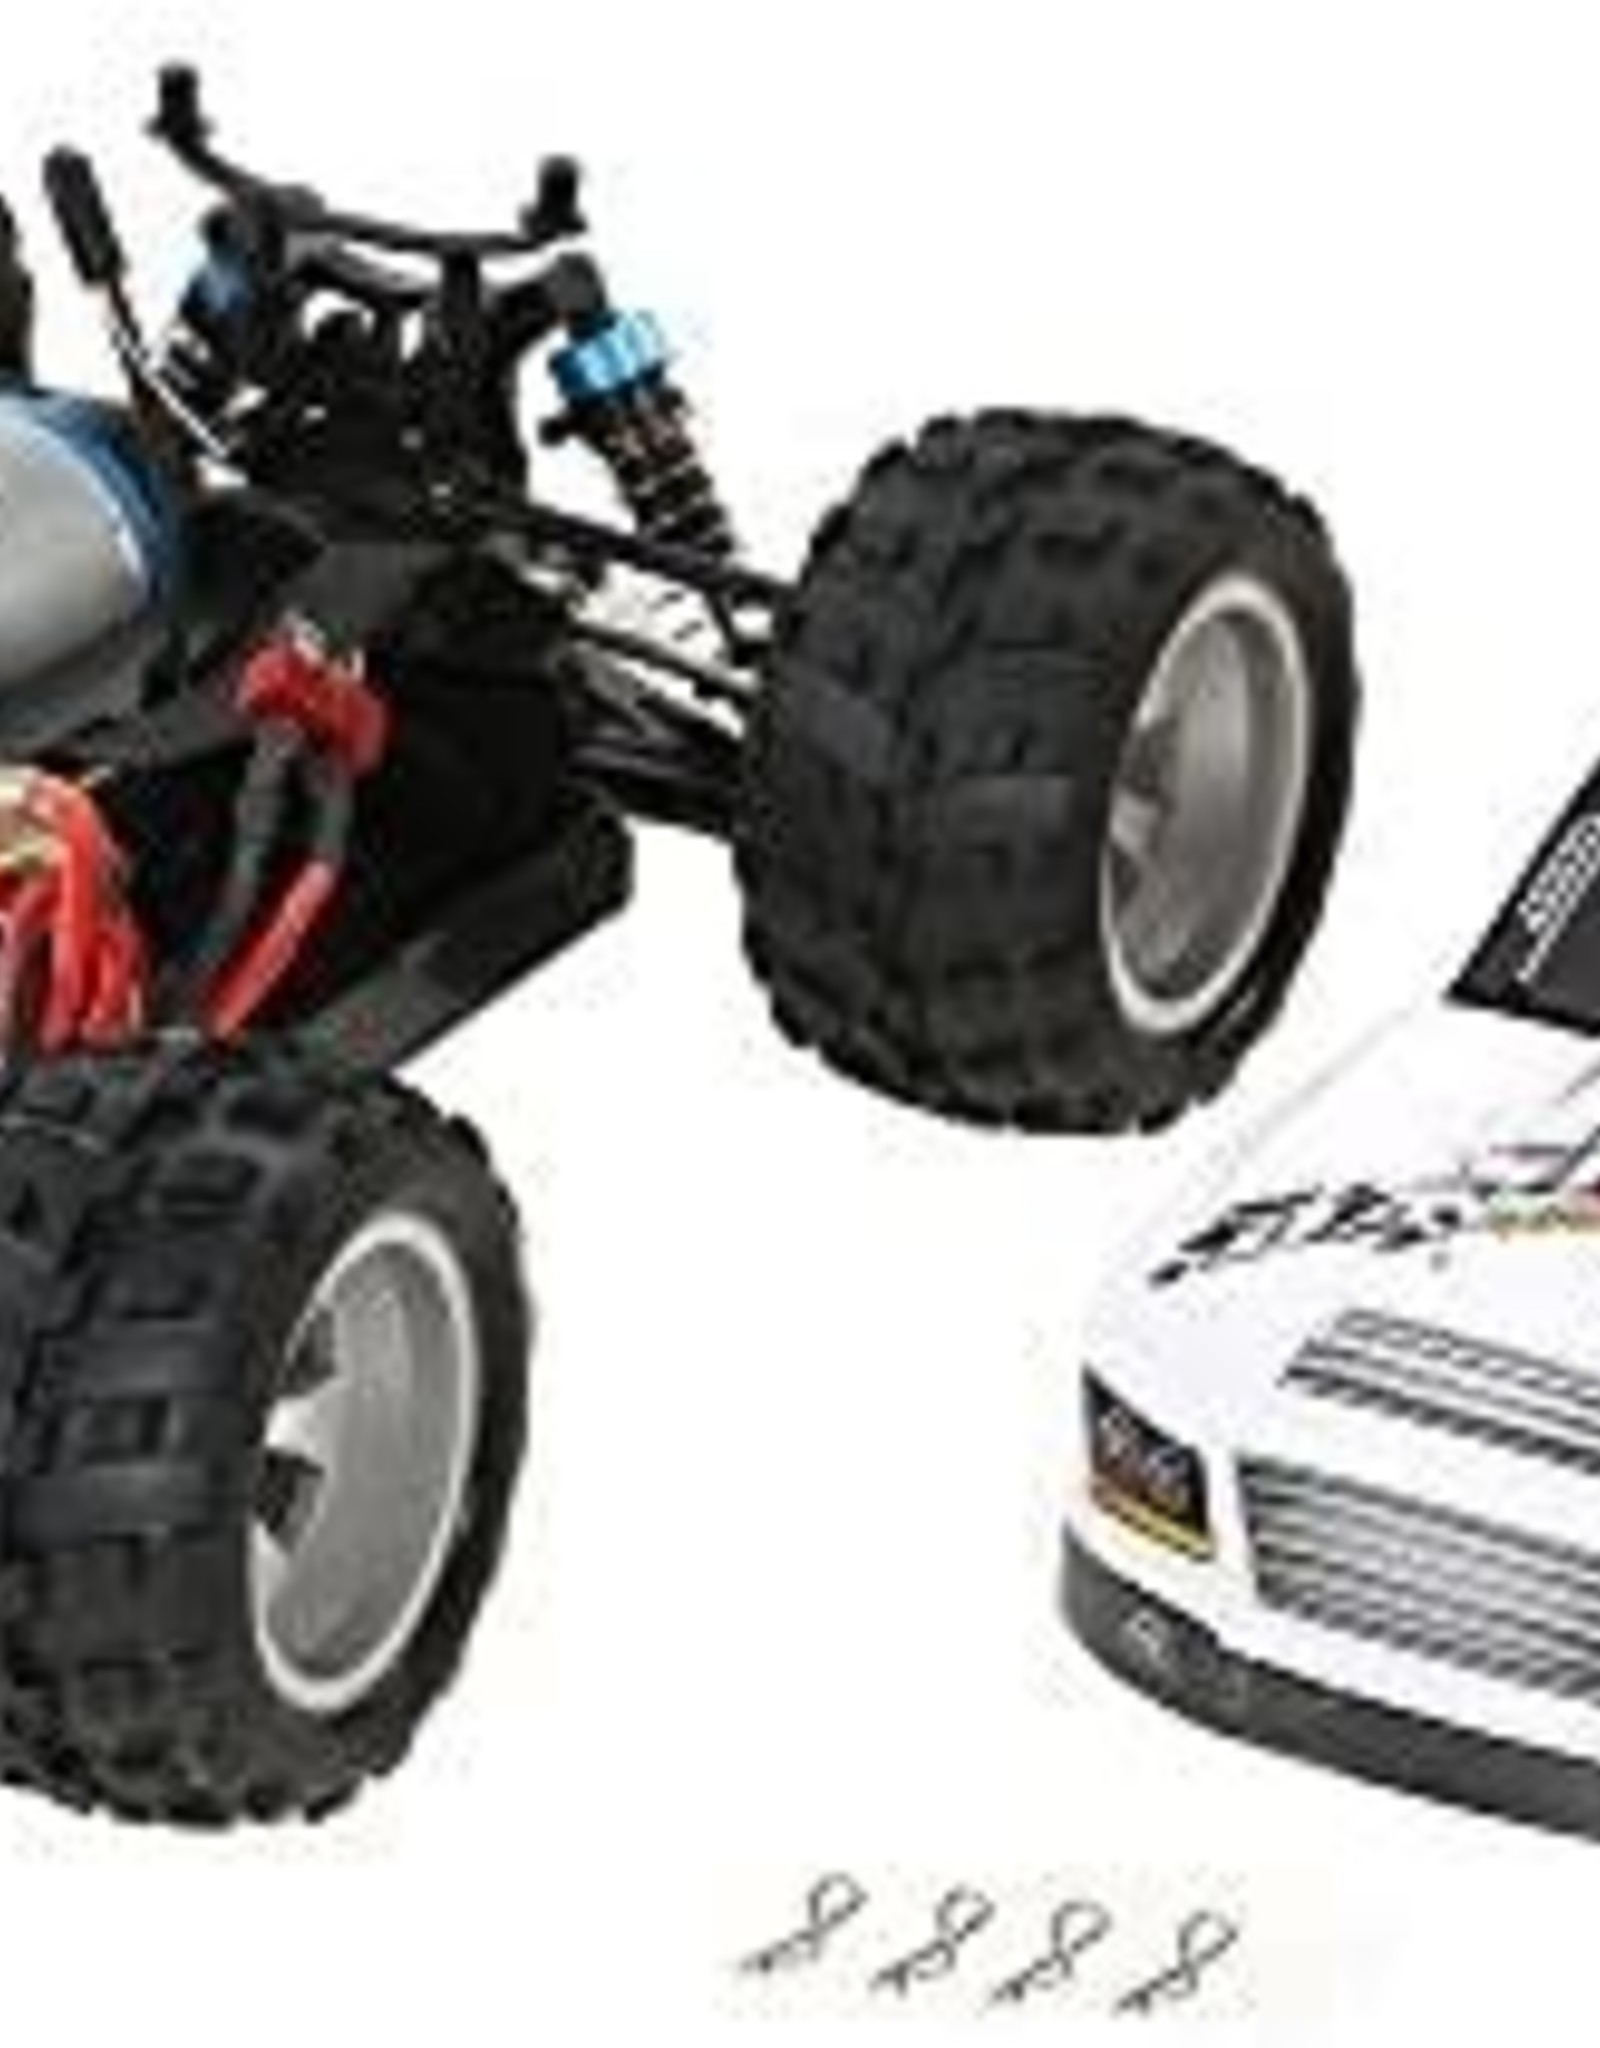 WL TOYS wltoys rc car A949 2.4G 4 channel 1:18 scale full proportional high speedrc car